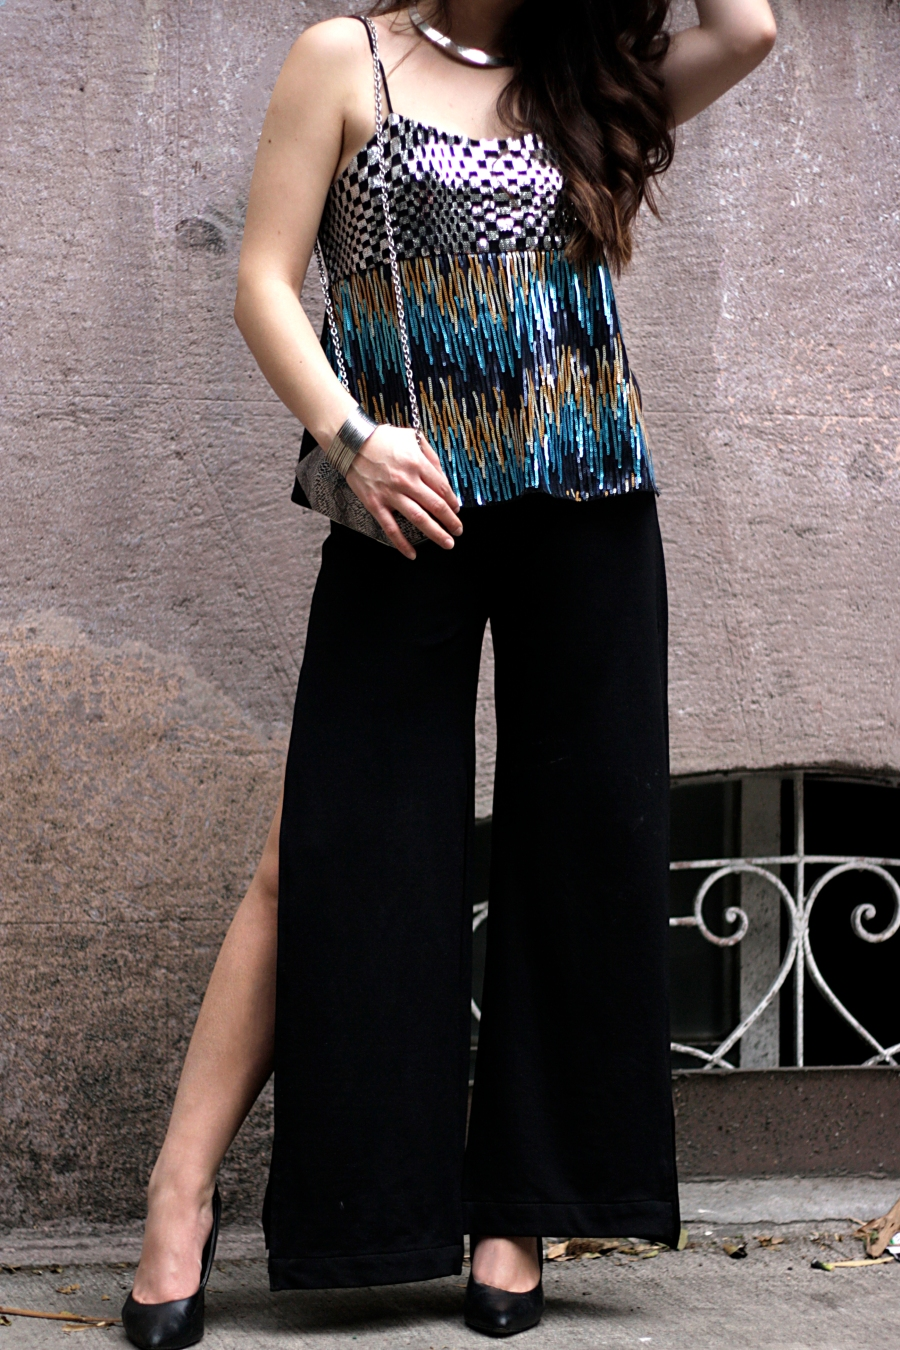 SEQUINED-TOP-DAY-NIGHT-ATUENDO29-9